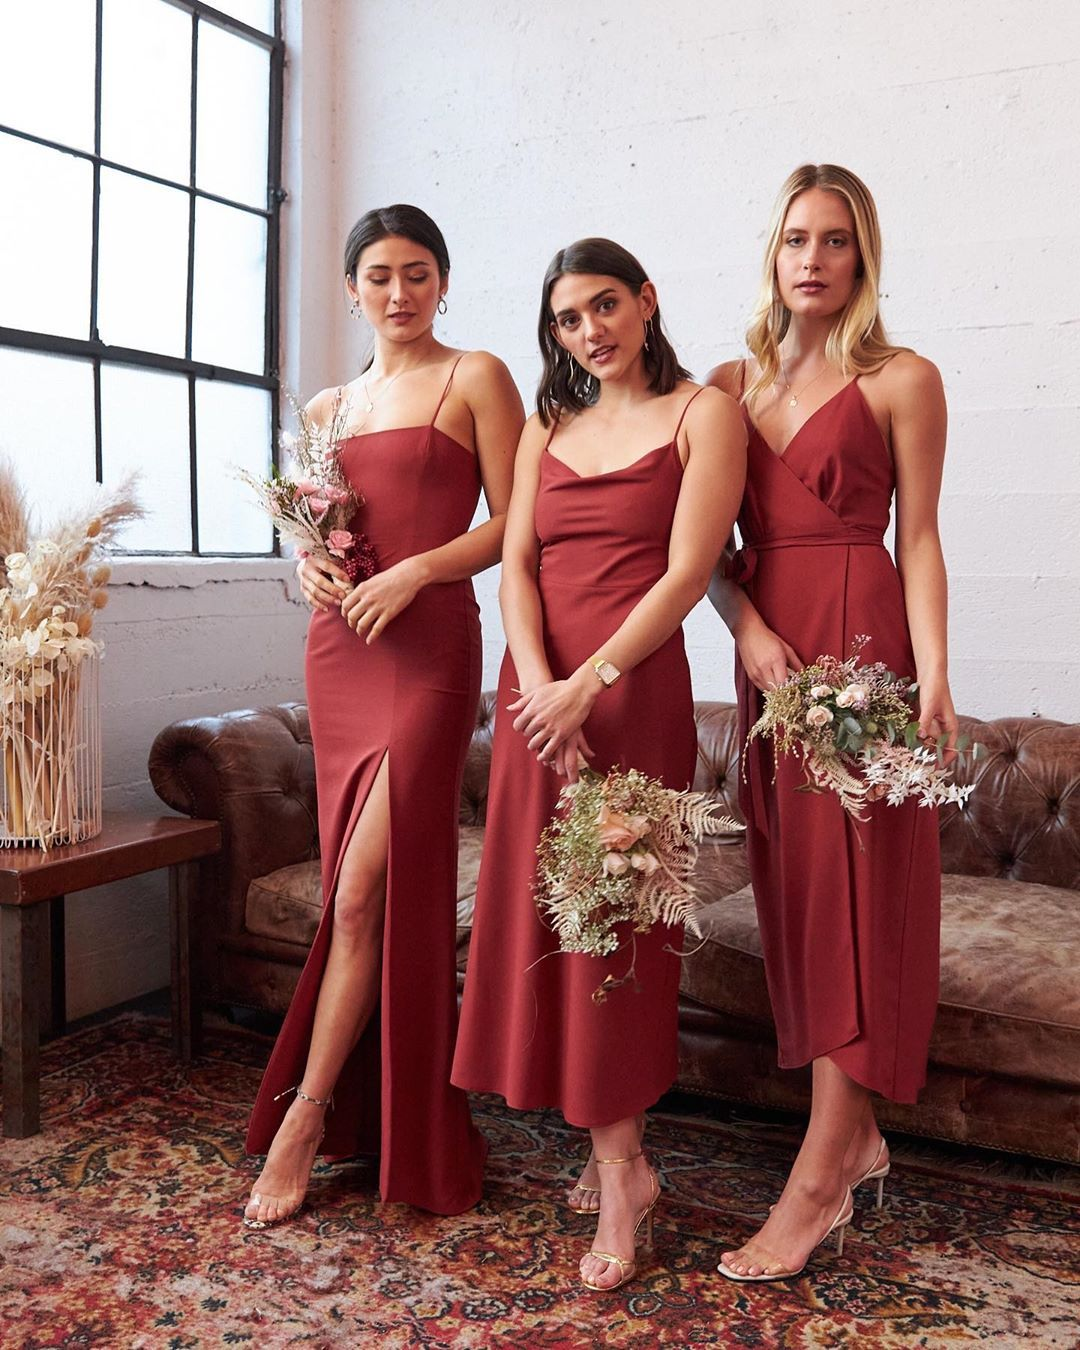 Park Fifth On Instagram Terracotta The Colour That Looks Good On Everyone Absolutely In Love With In 2020 Red Bridesmaid Dresses Bridesmaid Dresses Bridesmaid [ 1350 x 1080 Pixel ]